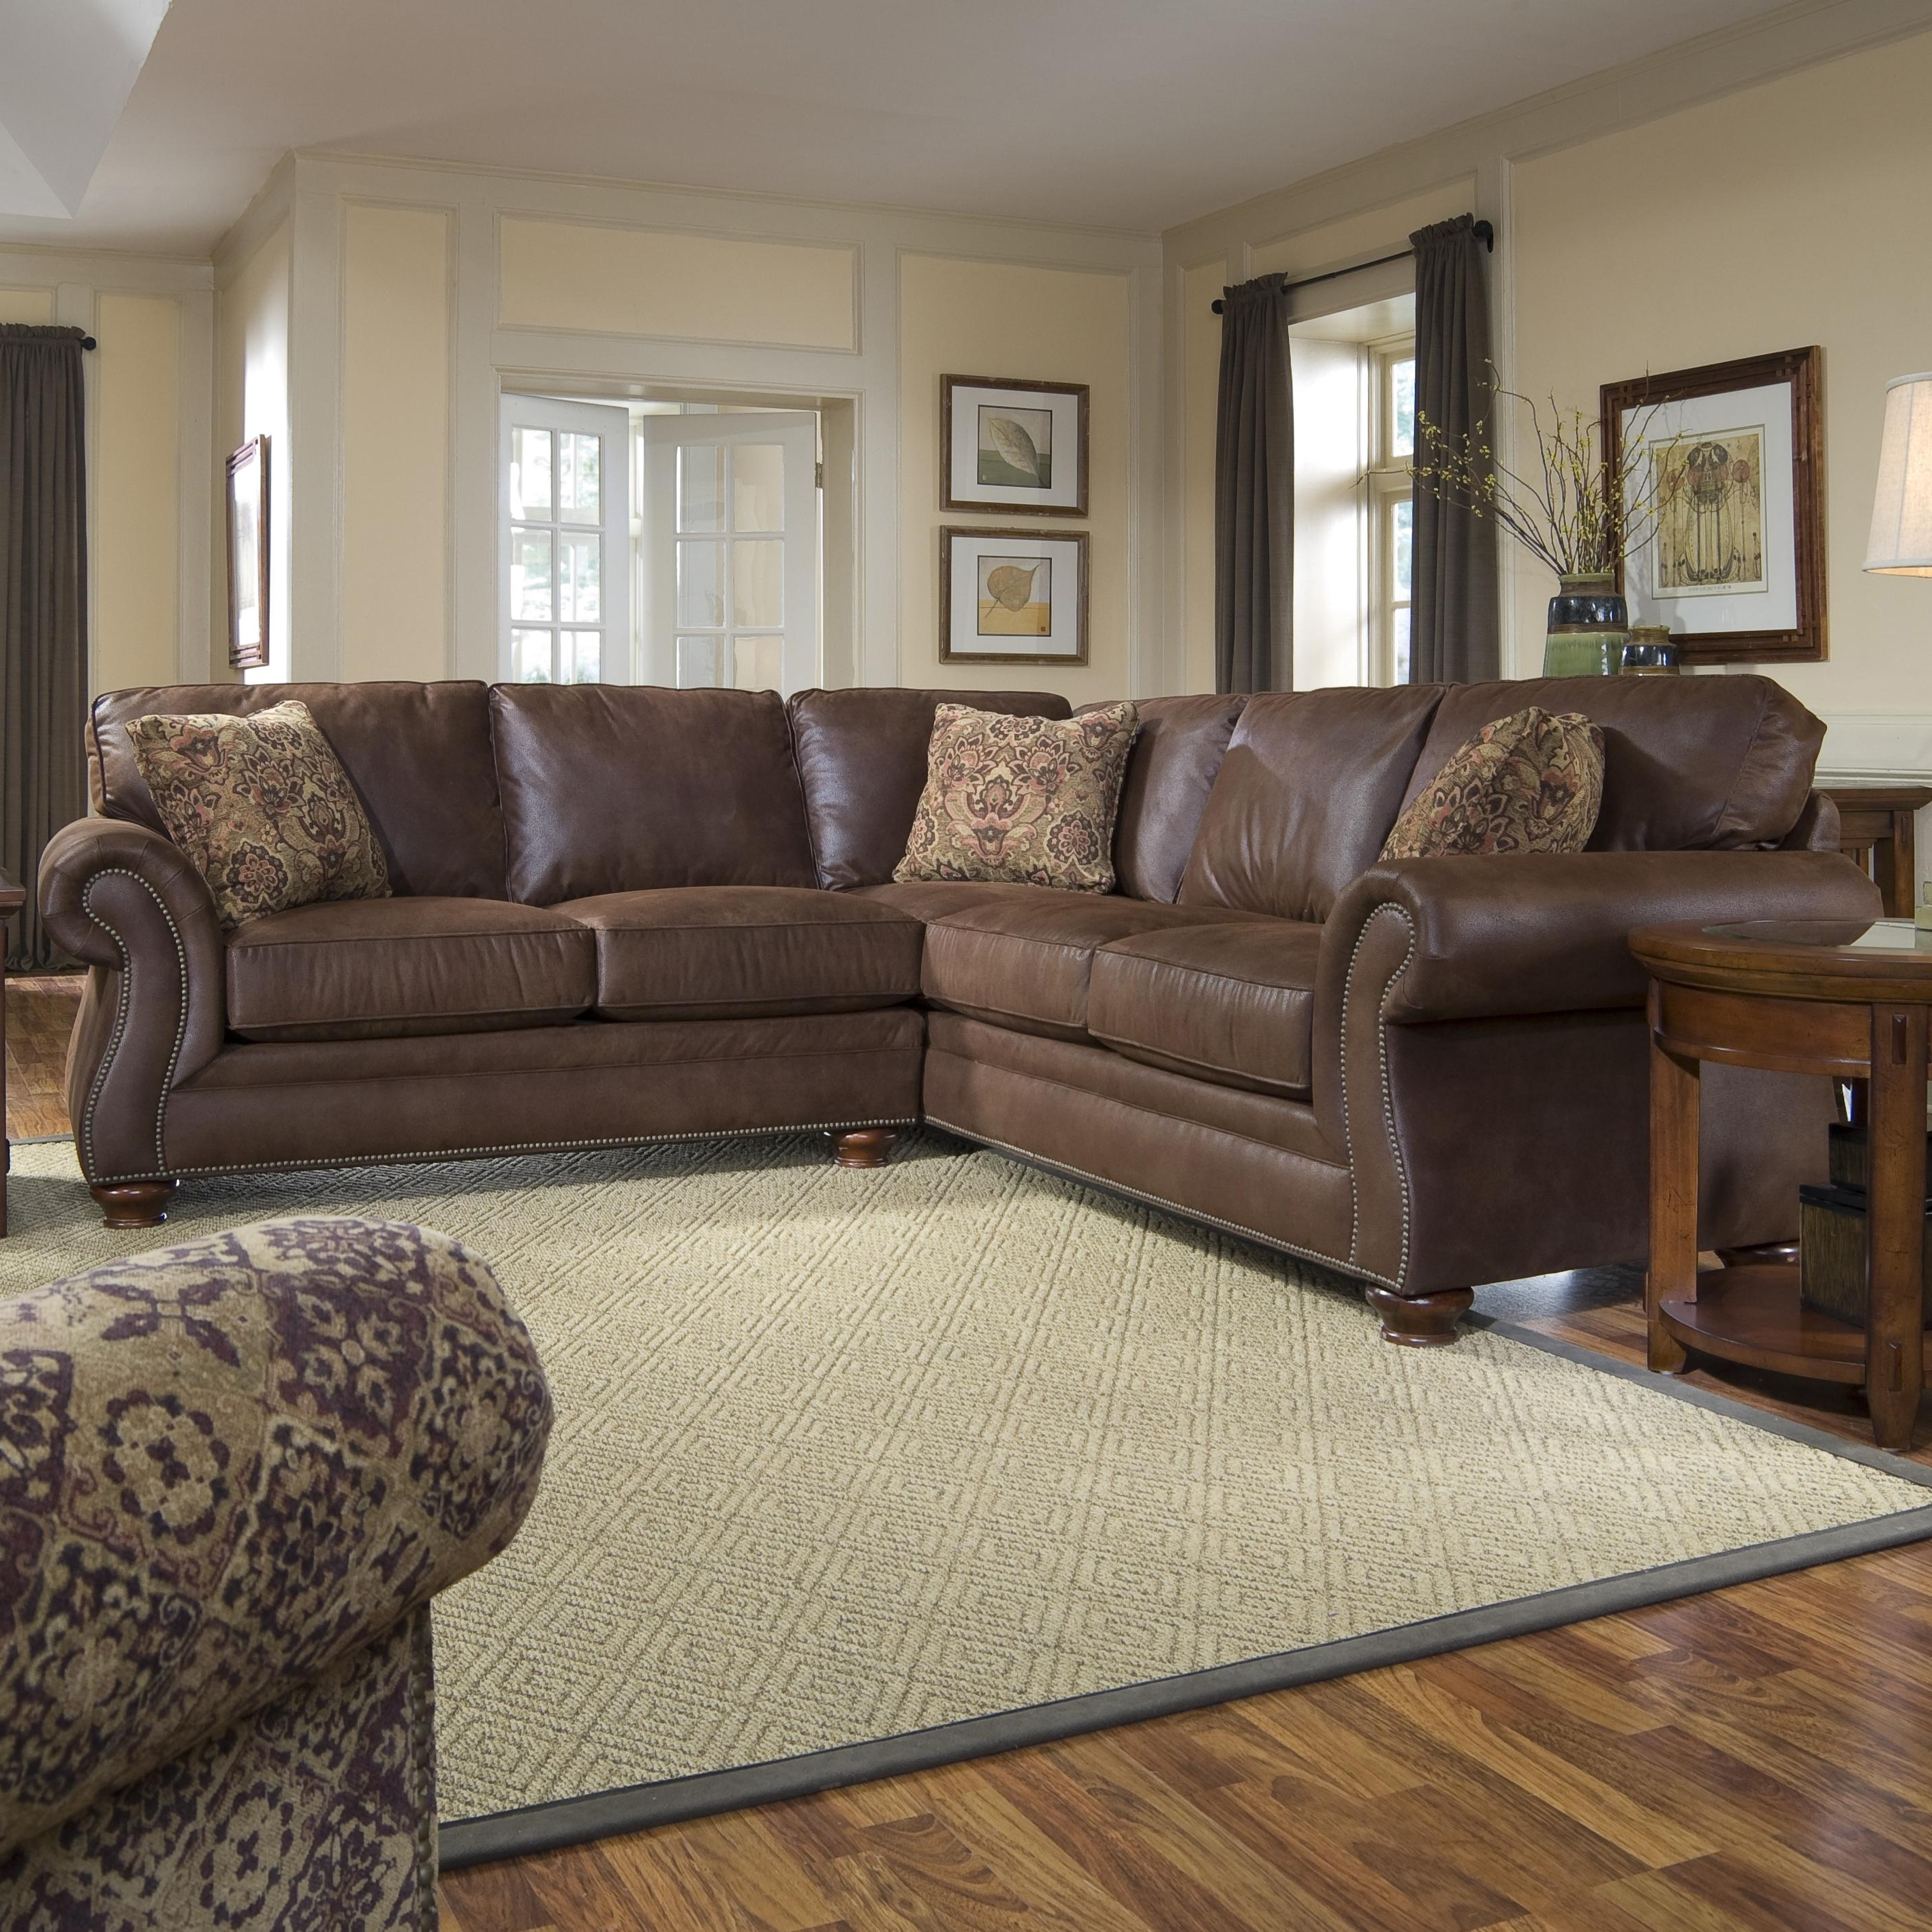 Fashionable Sectional Sofas At Broyhill Regarding Broyhill Furniture Laramie 3 Piece Sectional Sofa (View 7 of 20)